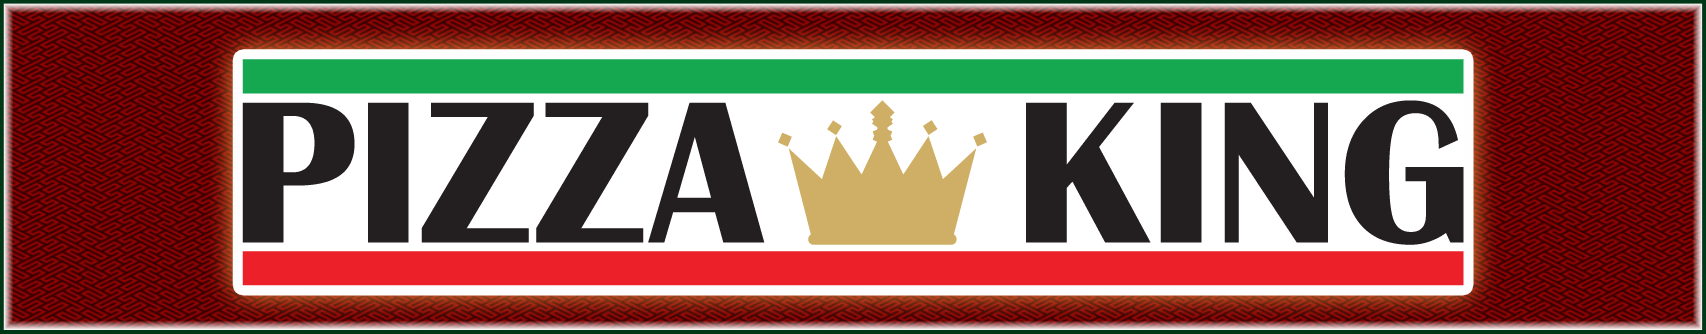 Pizza King logo